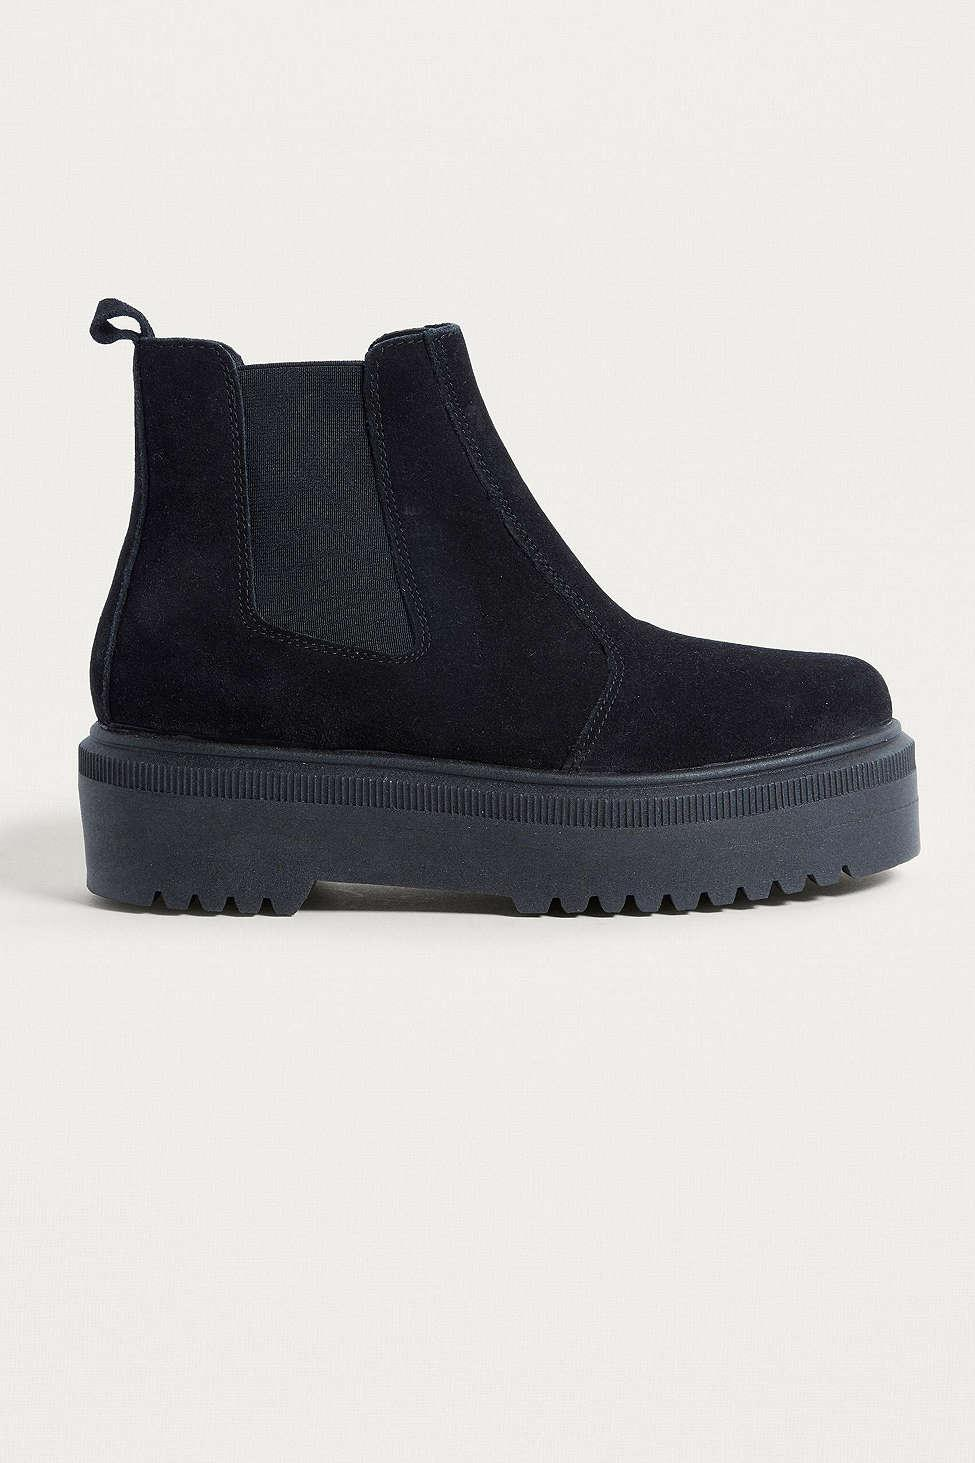 Urban Outfitters Uo Brody Black Suede